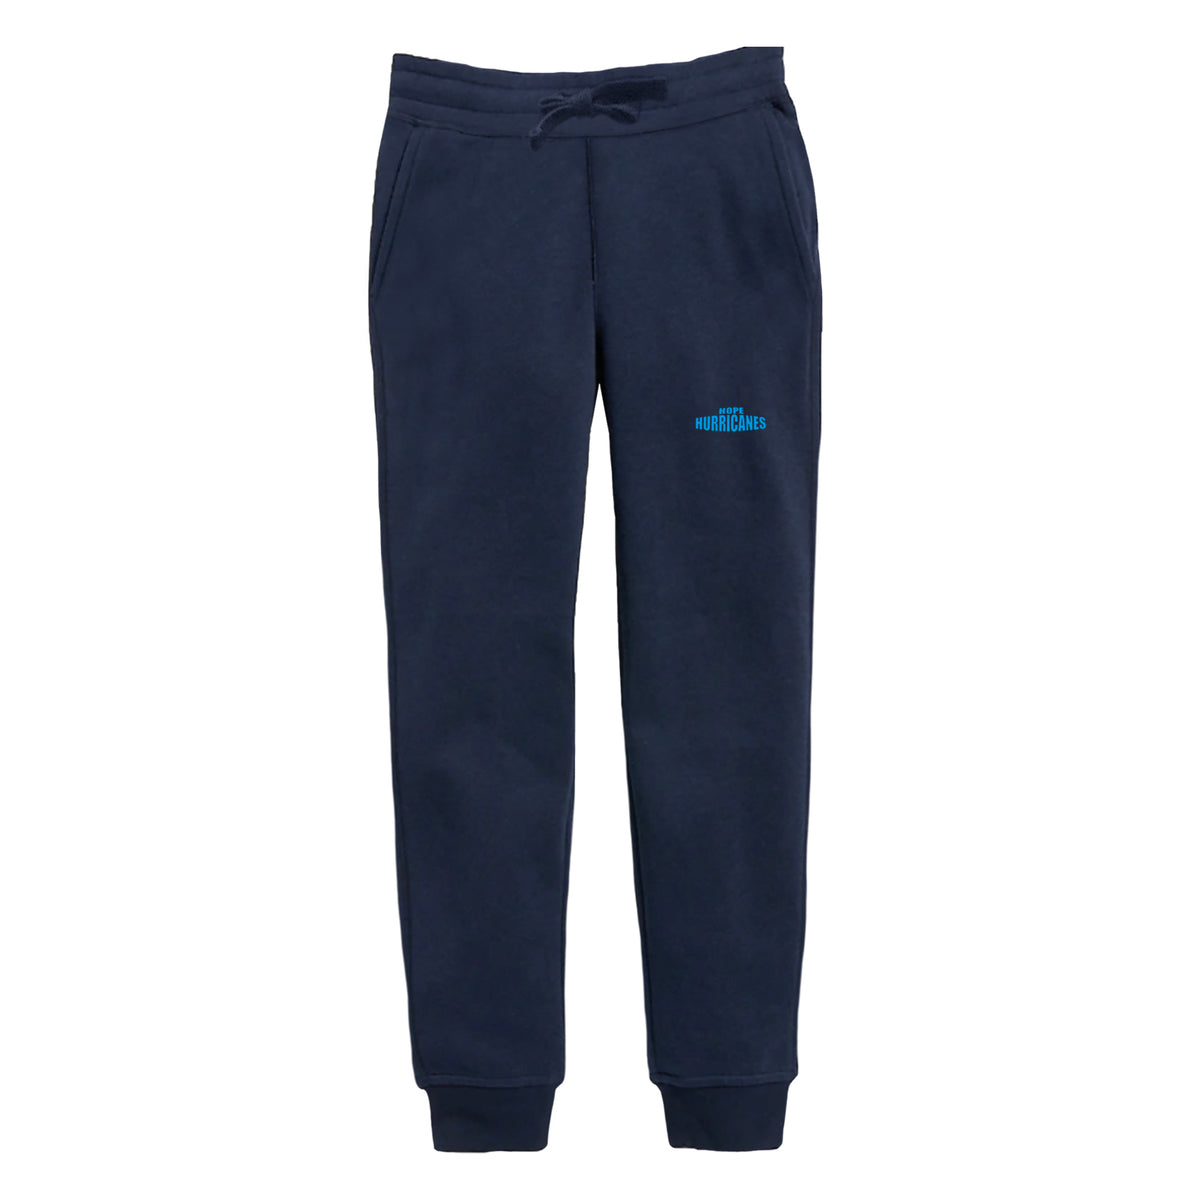 HOPE LUTHERAN SWEATPANTS, ADULT